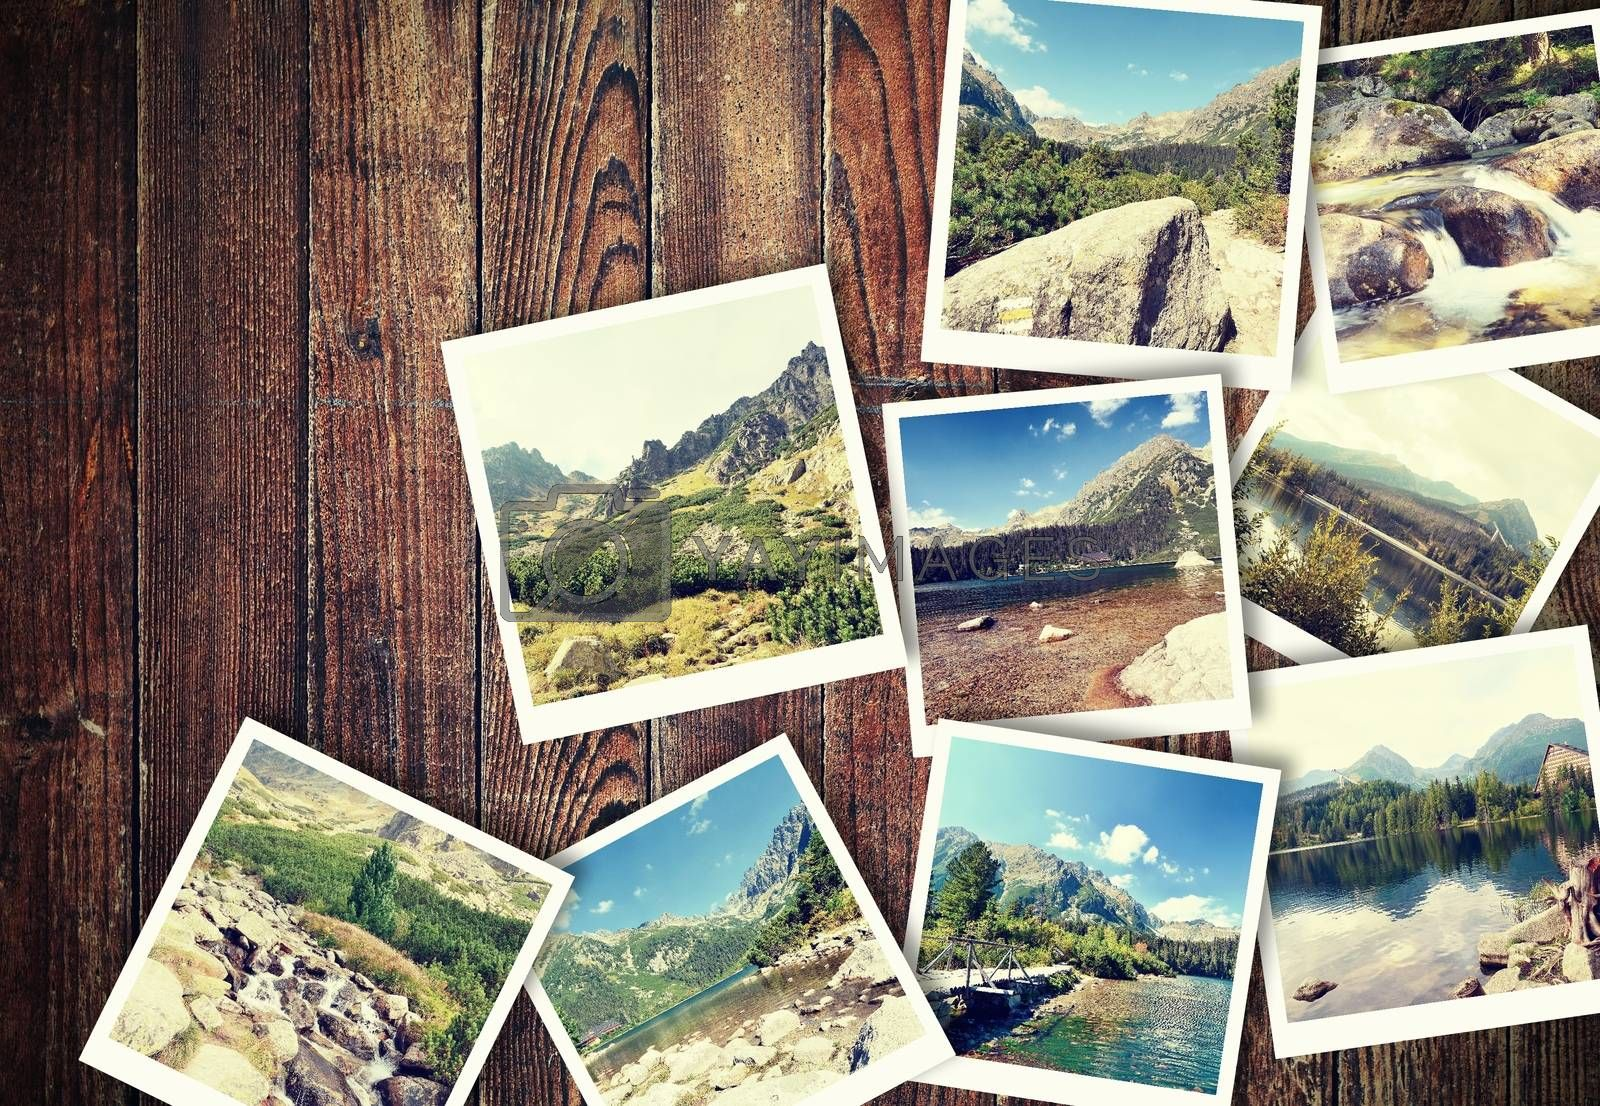 Heap of the vintage photos from holiday in mountains with traditional white frame placed on wooden desk.